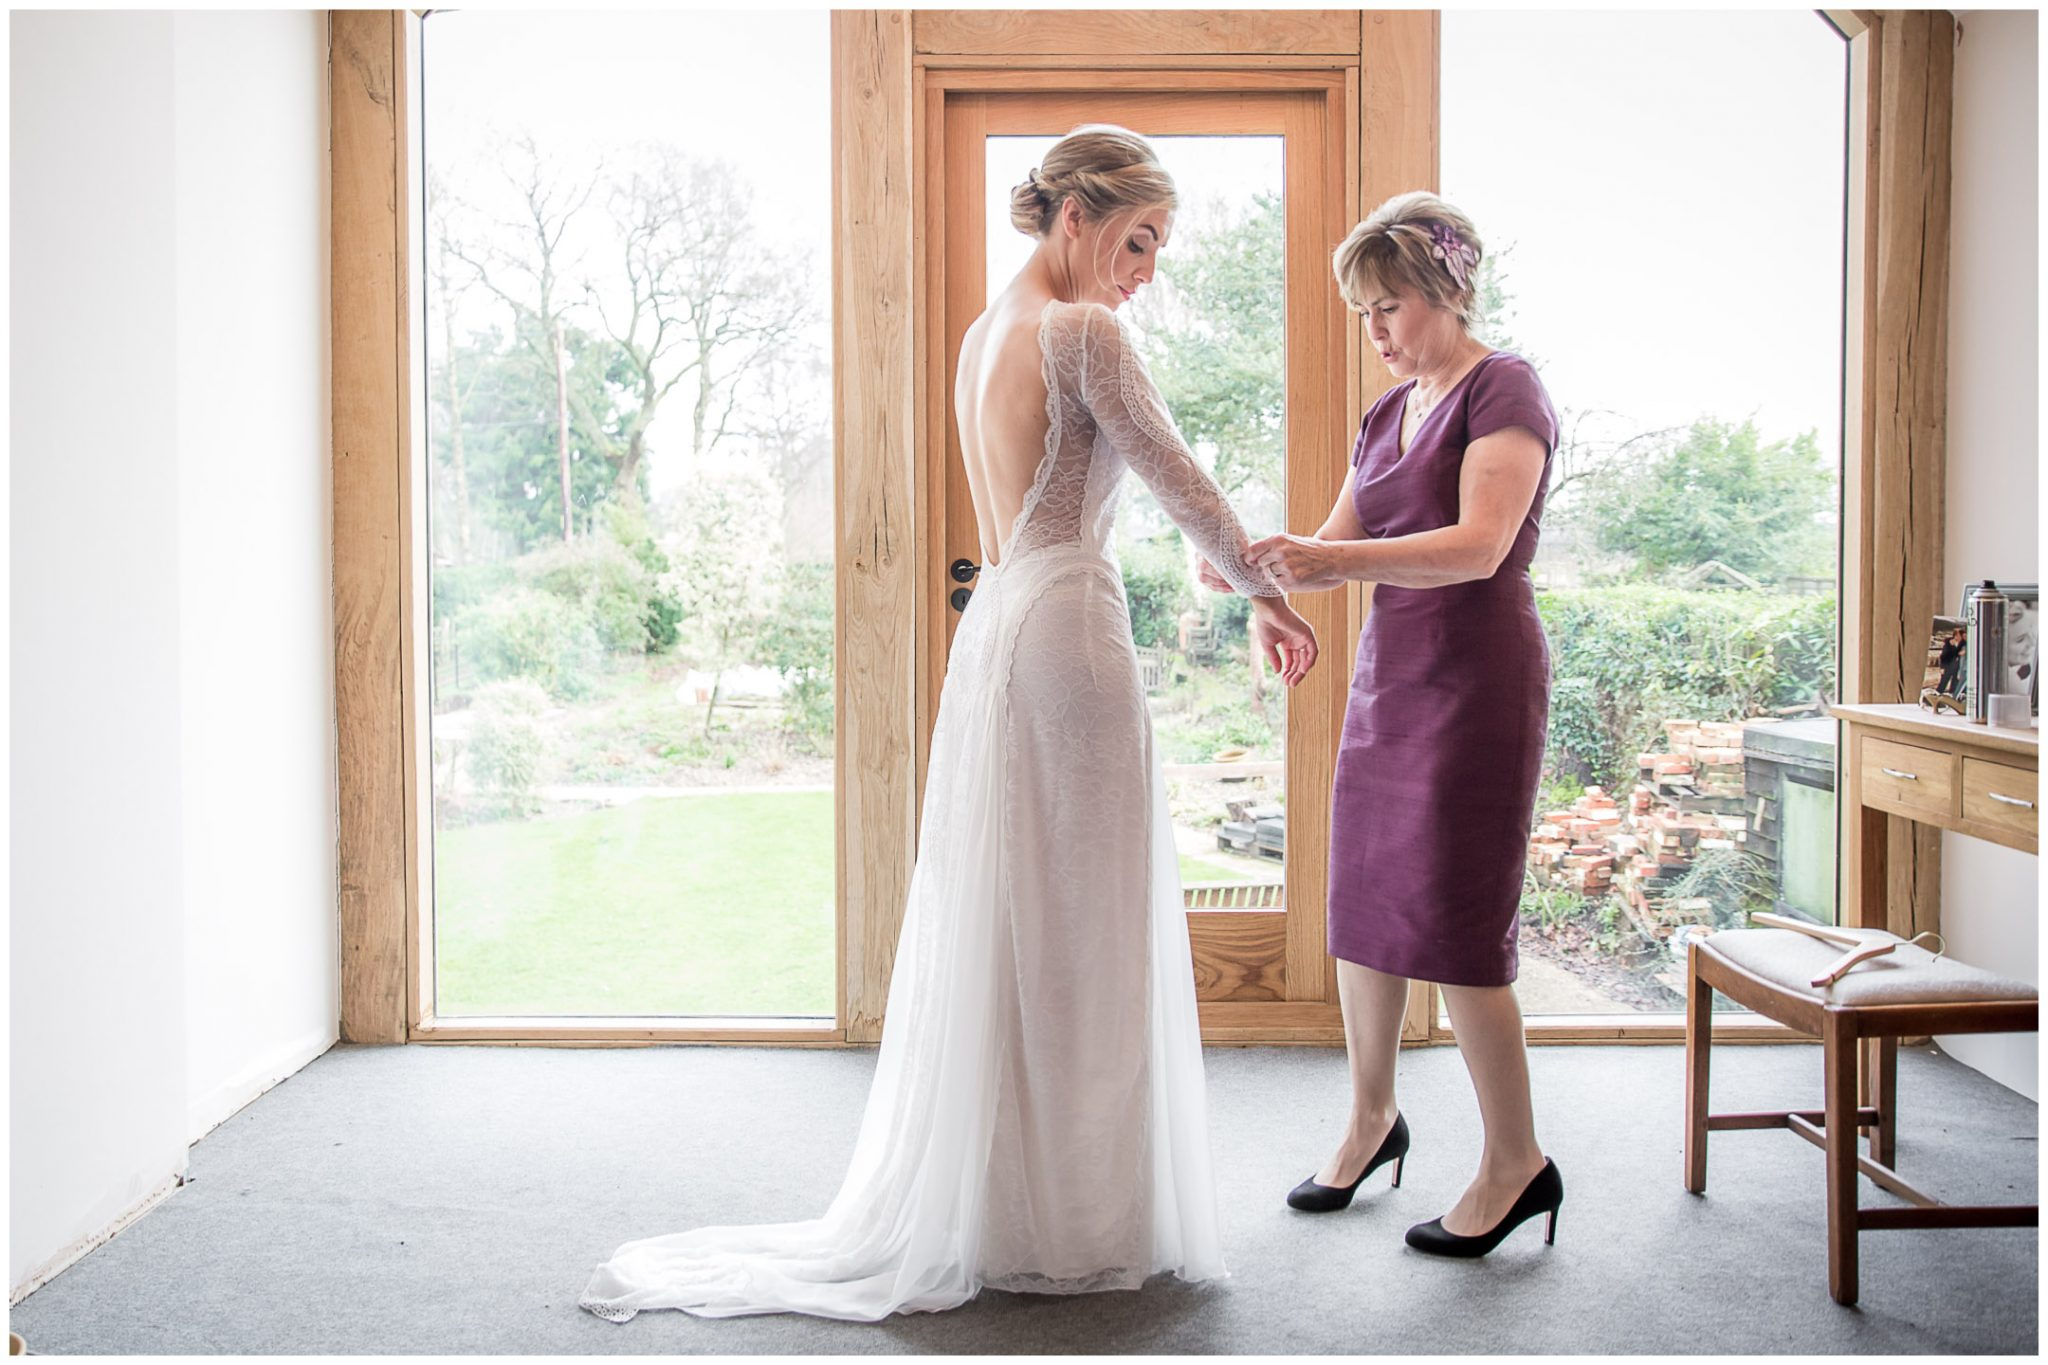 The bride's mother helps her to get dressed